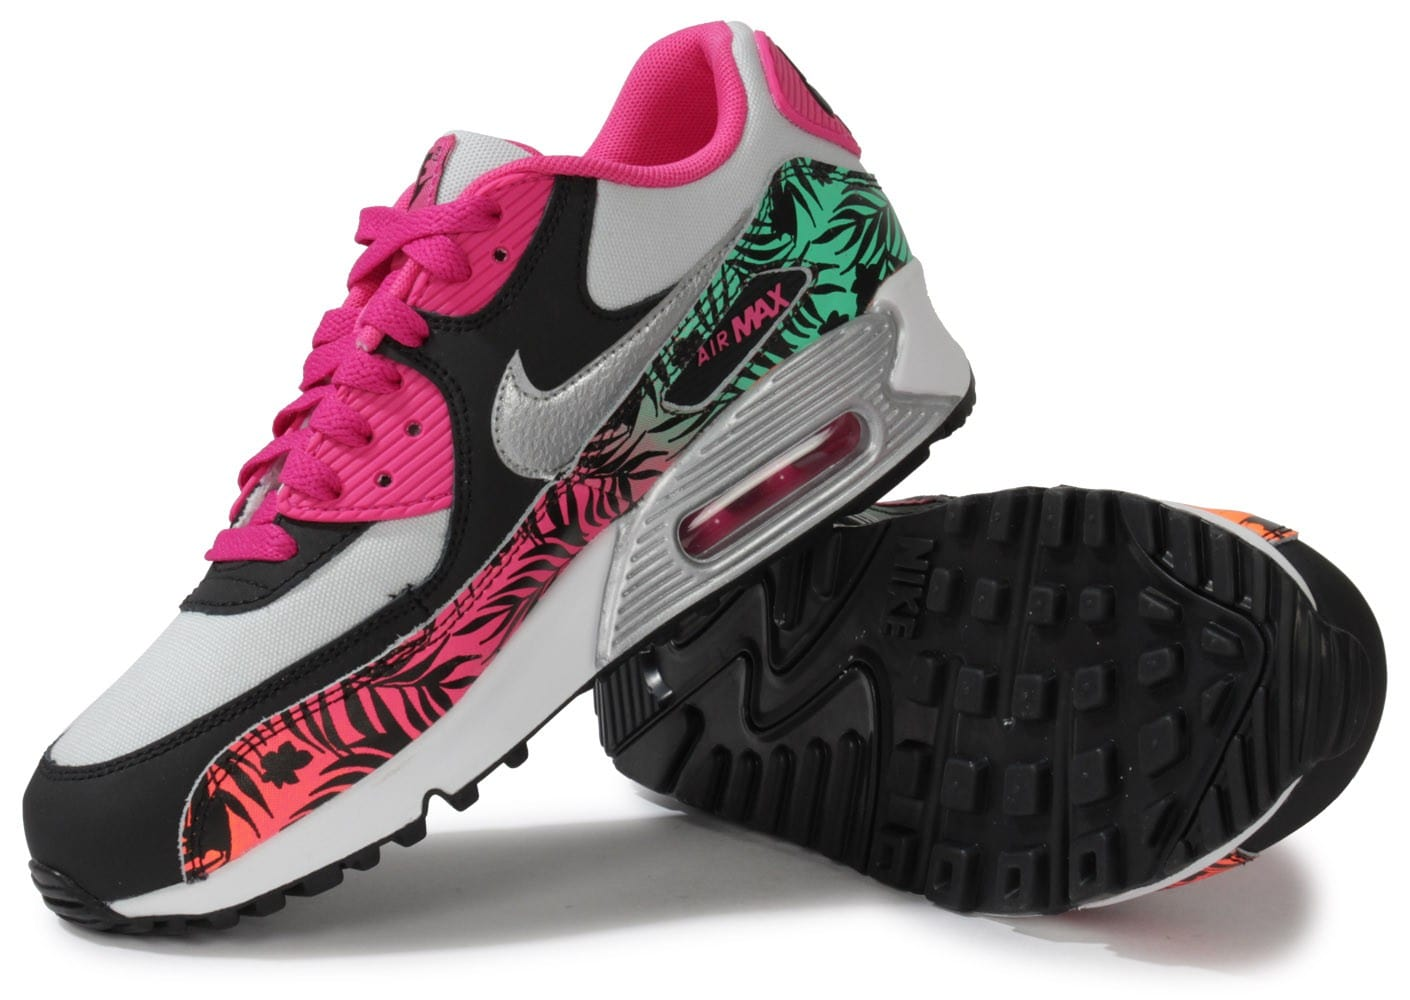 promo code 6d5af 0b2b4 ... low cost nike air max 90 junior print rosenike air max 90 mesh jr print  noir